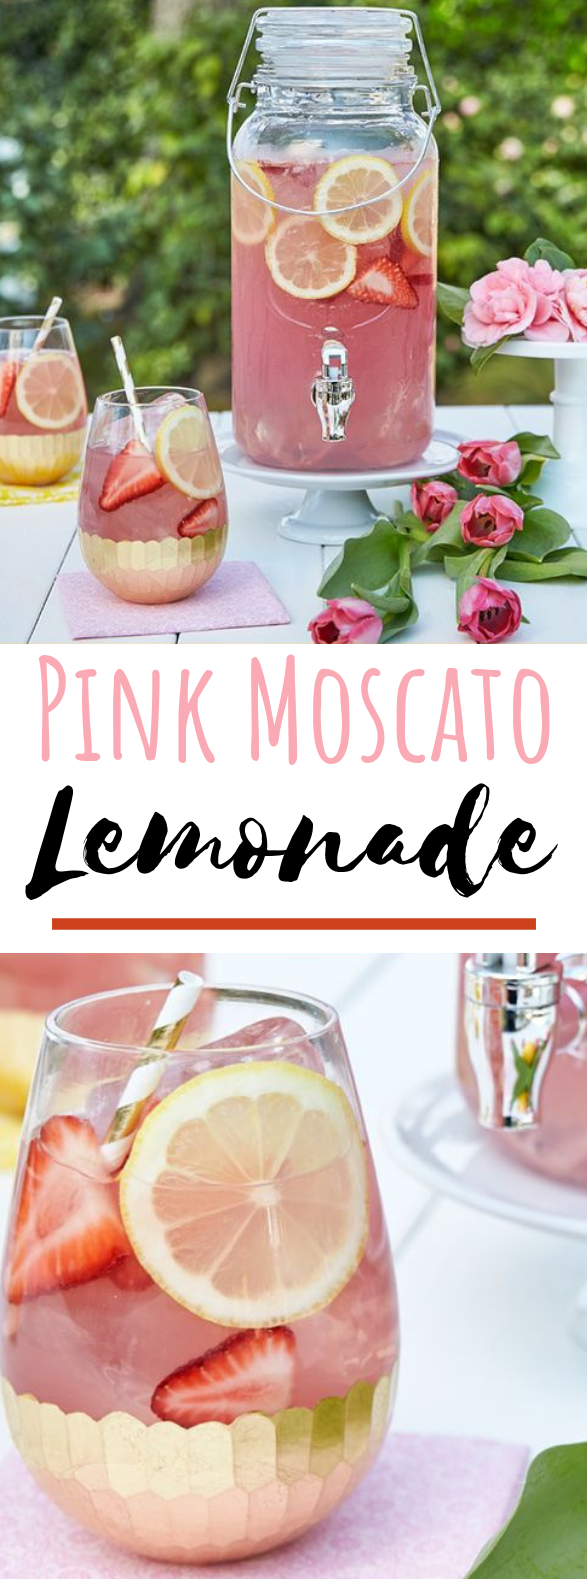 Moscato Lemonade #drinks #cocktails #lemonadepunch